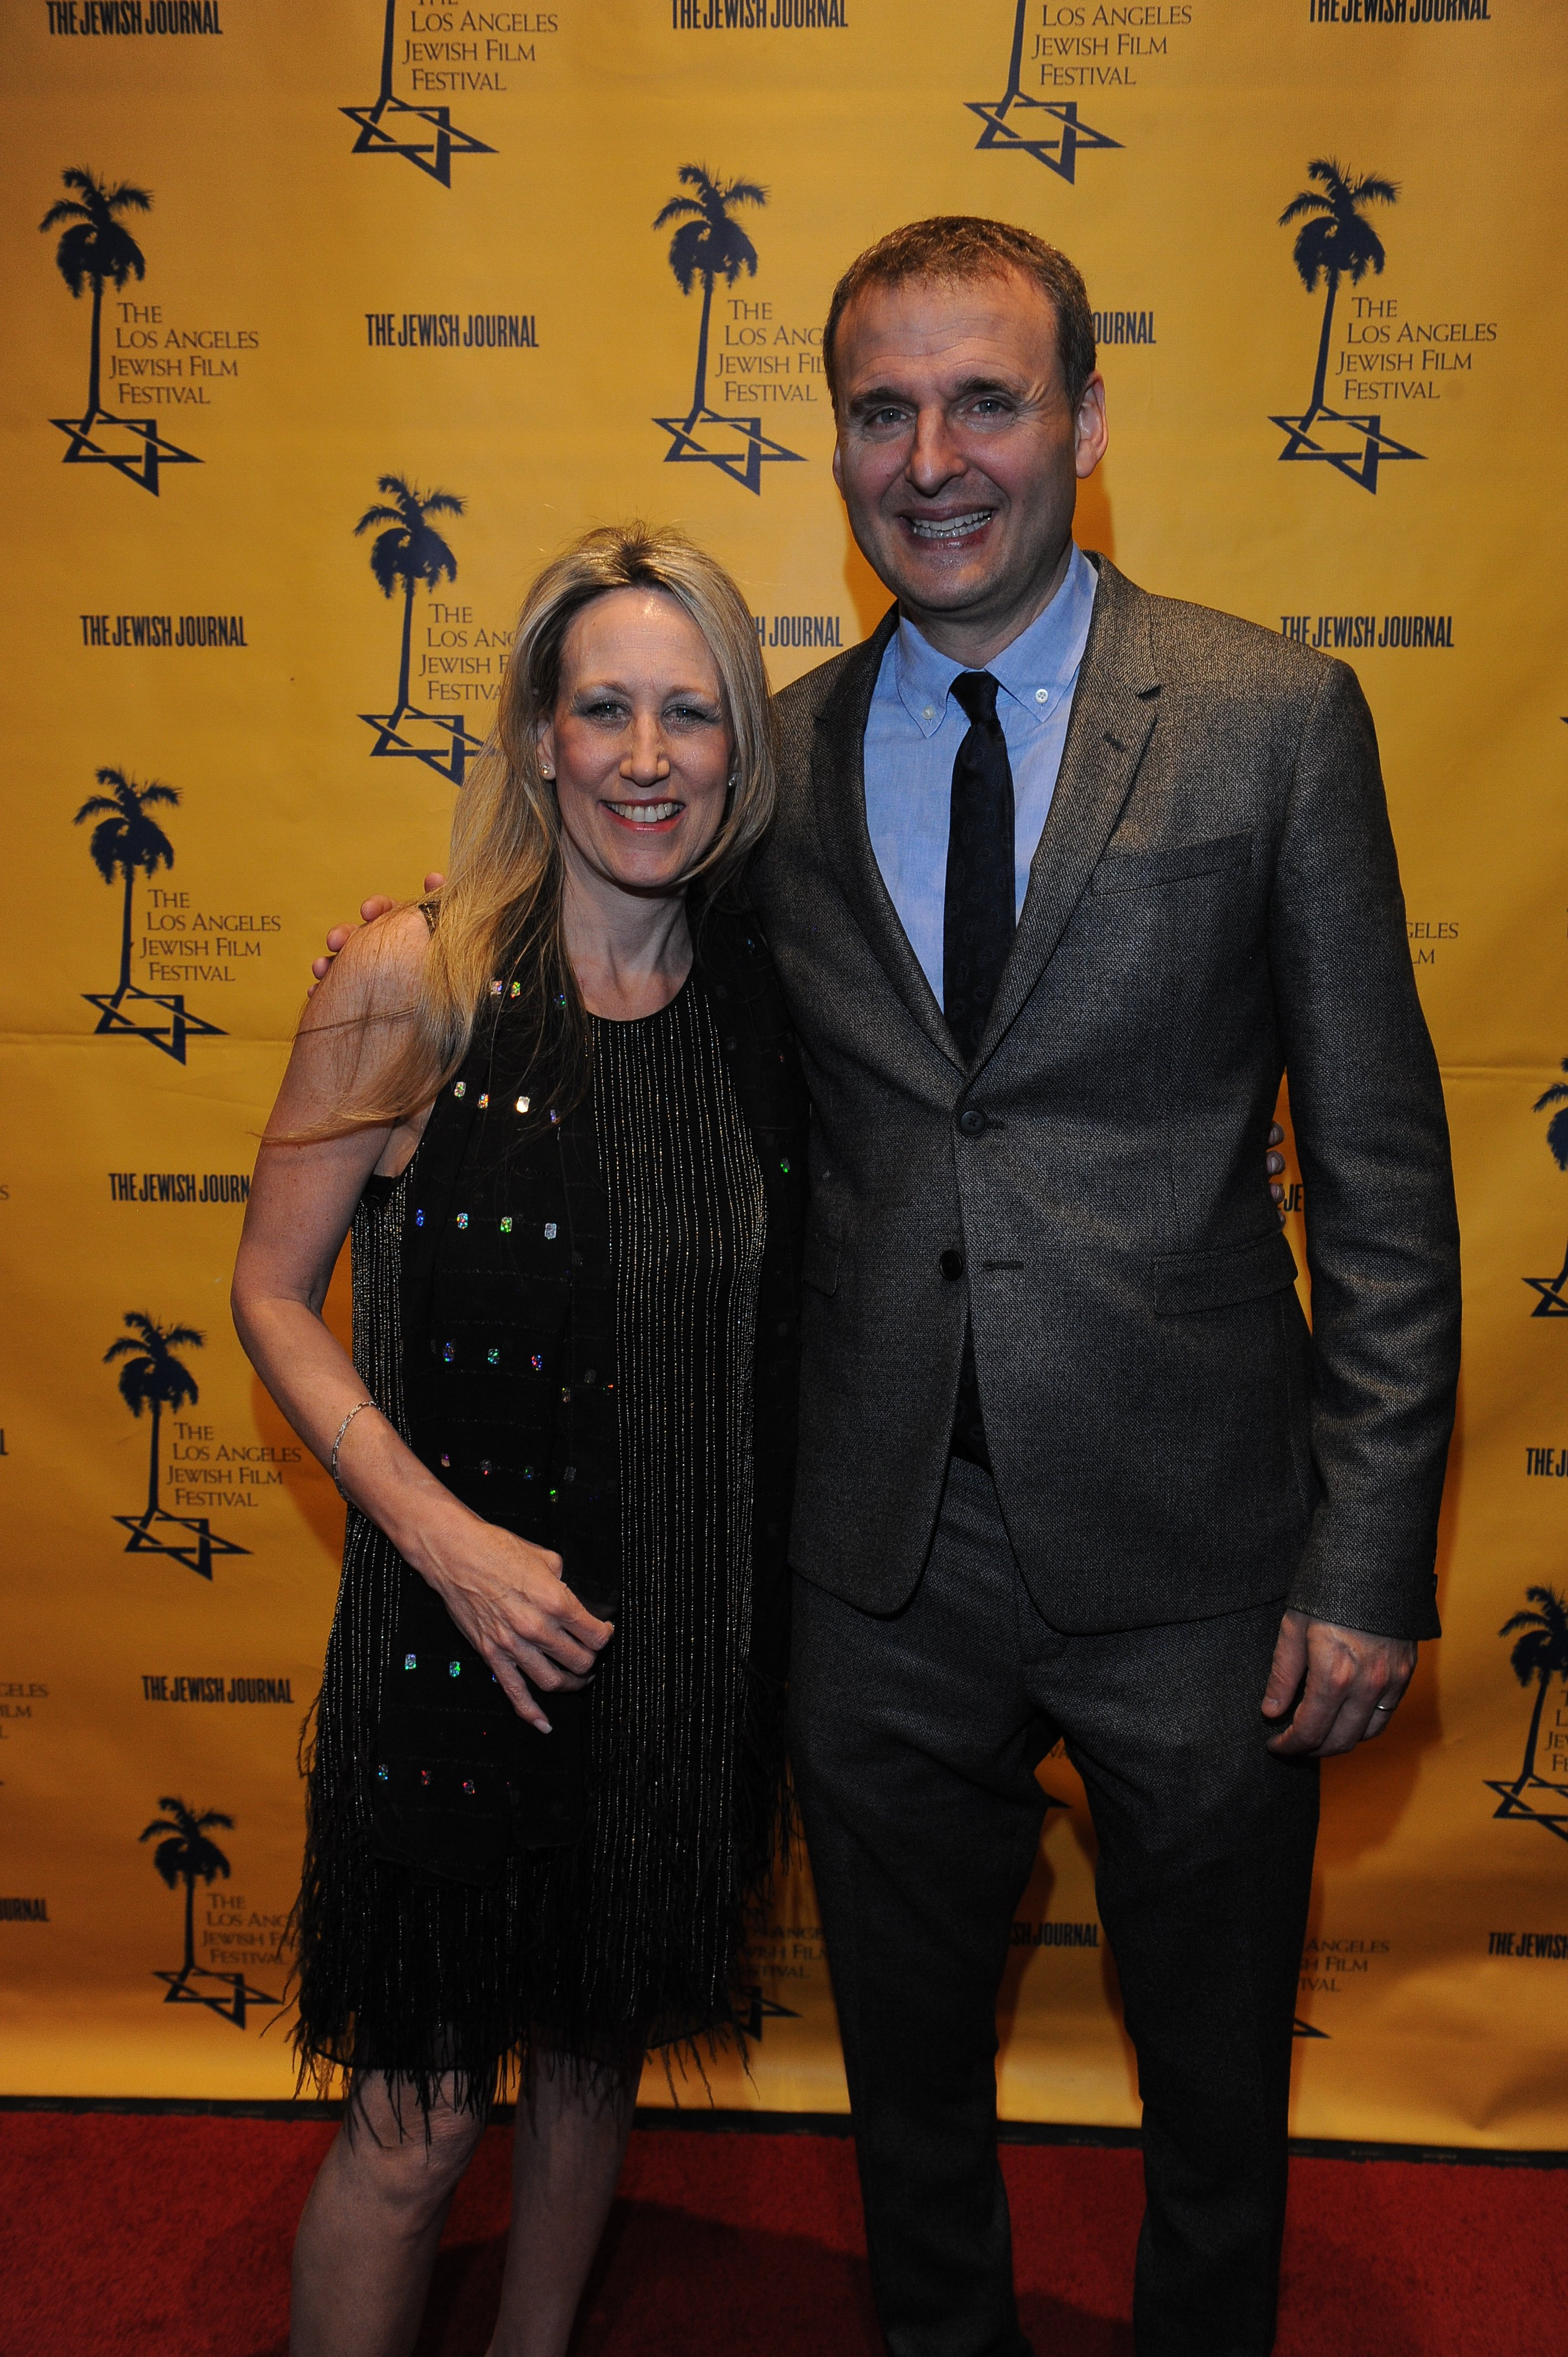 Hilary and Phil Rosenthal